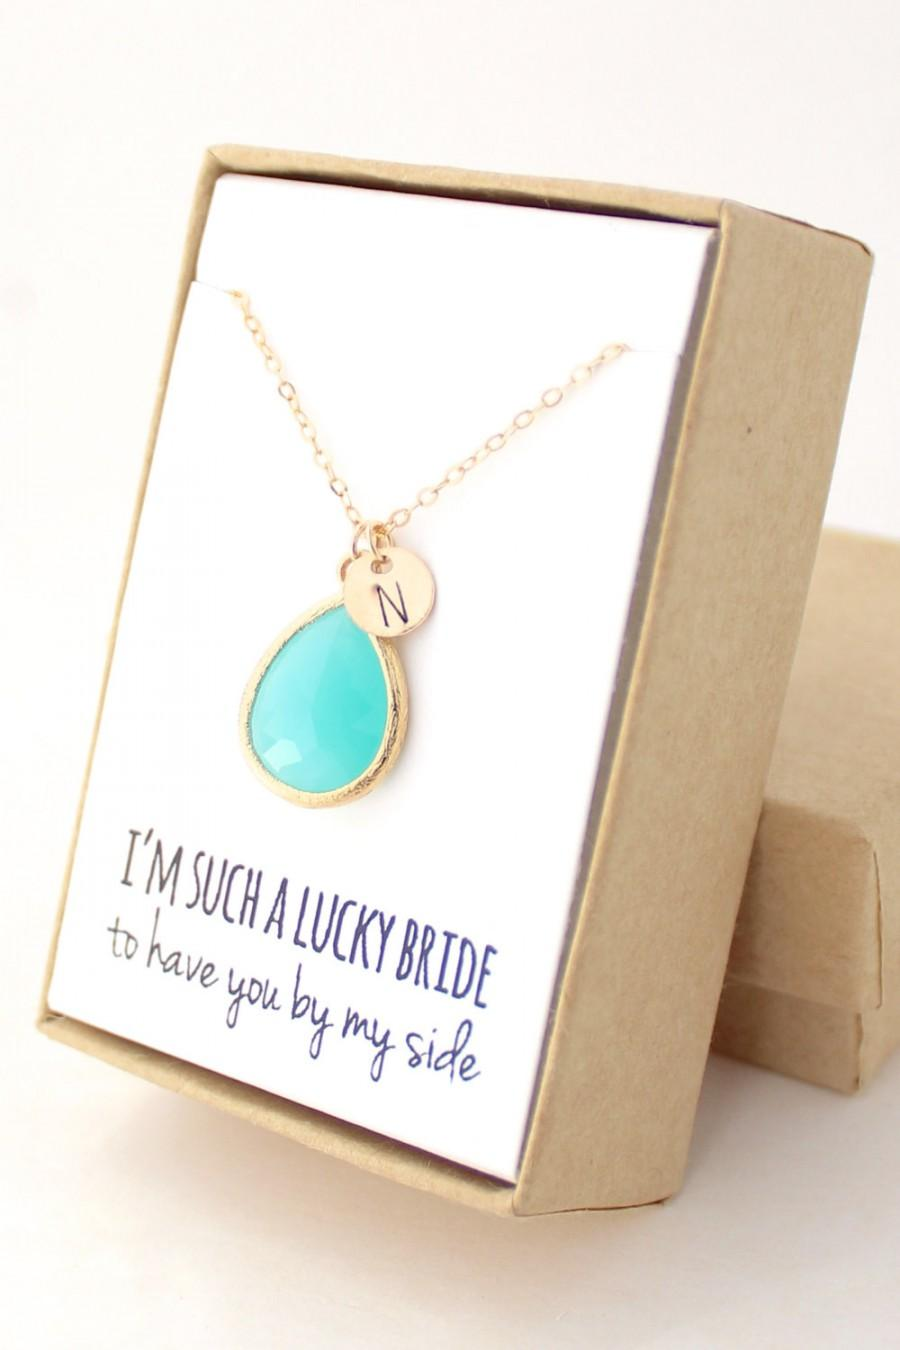 Wedding - Turquoise / Gold Teardrop Necklace - Turquoise Bridesmaid Necklace - Bridesmaid Gift Jewelry - Turquoise and Gold Necklace - NB1